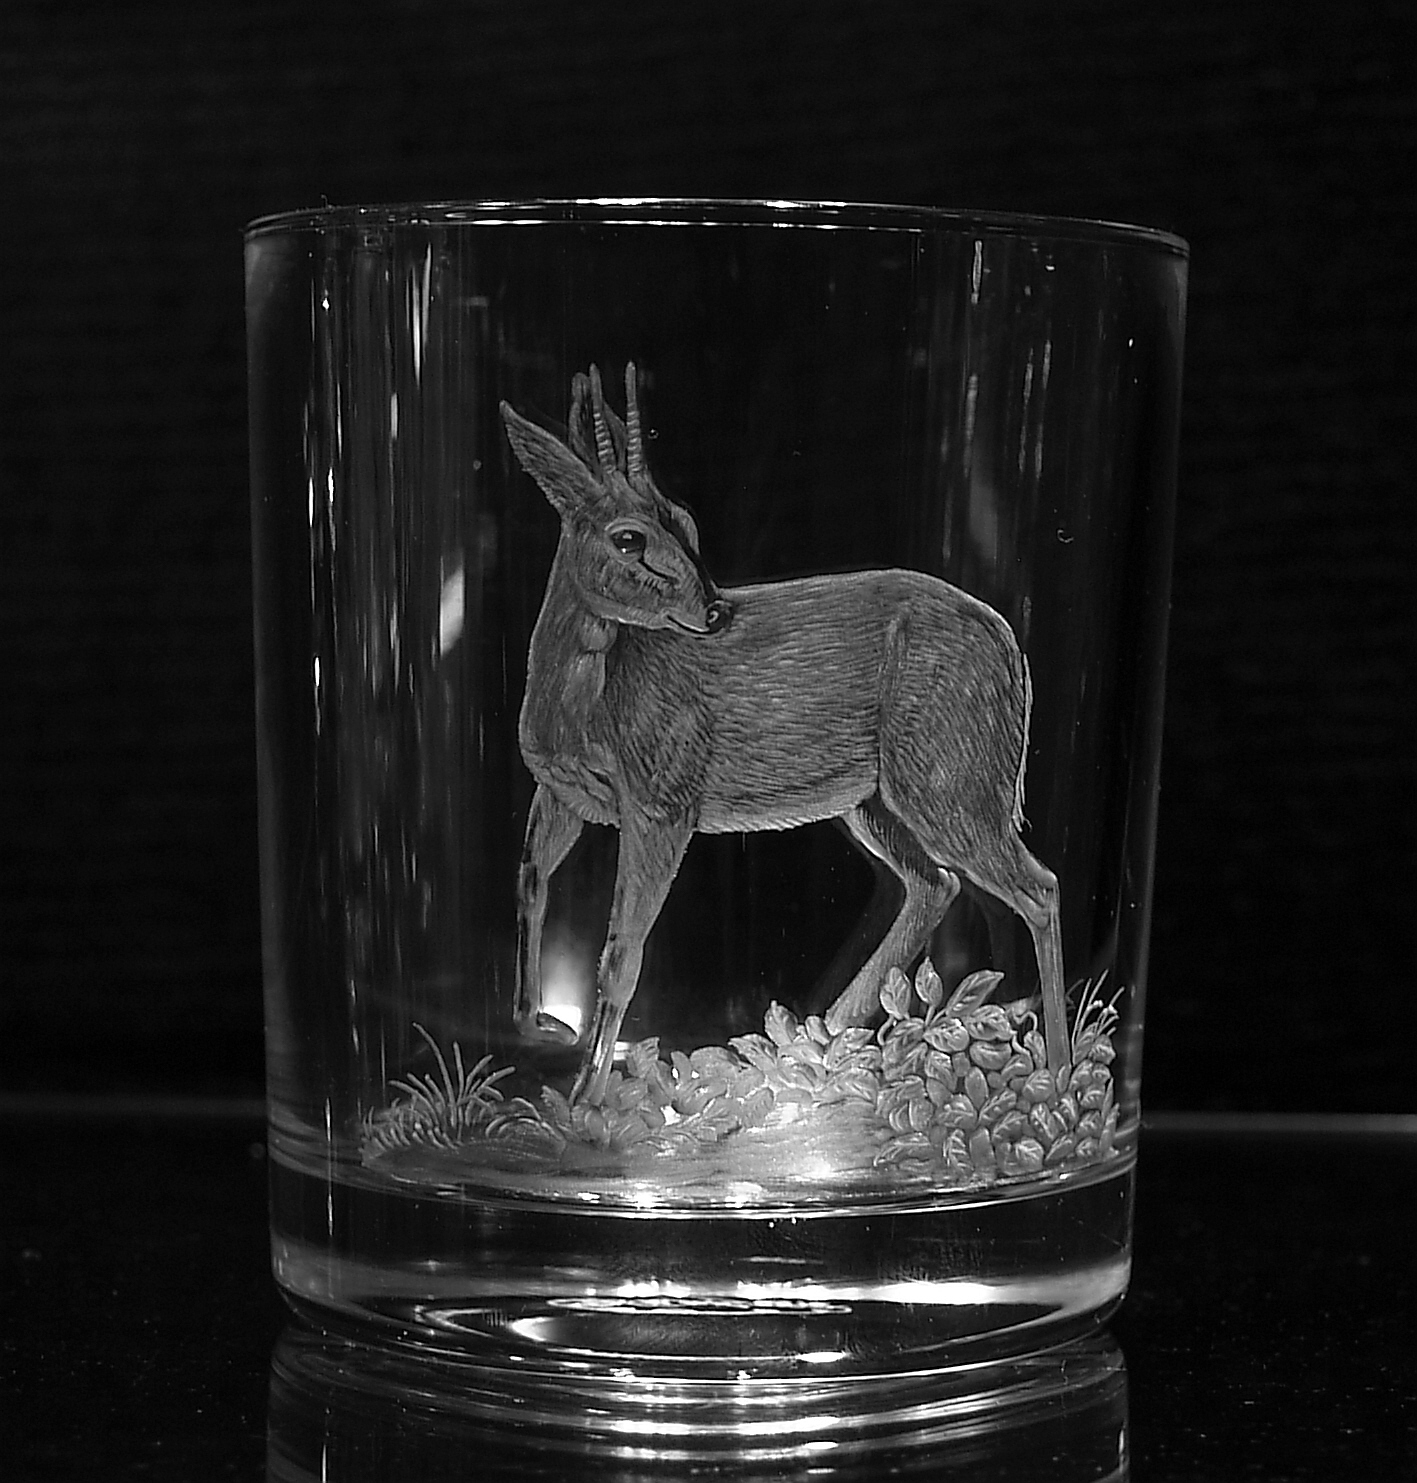 Crystal Glass Tumbler with Grey Duiker